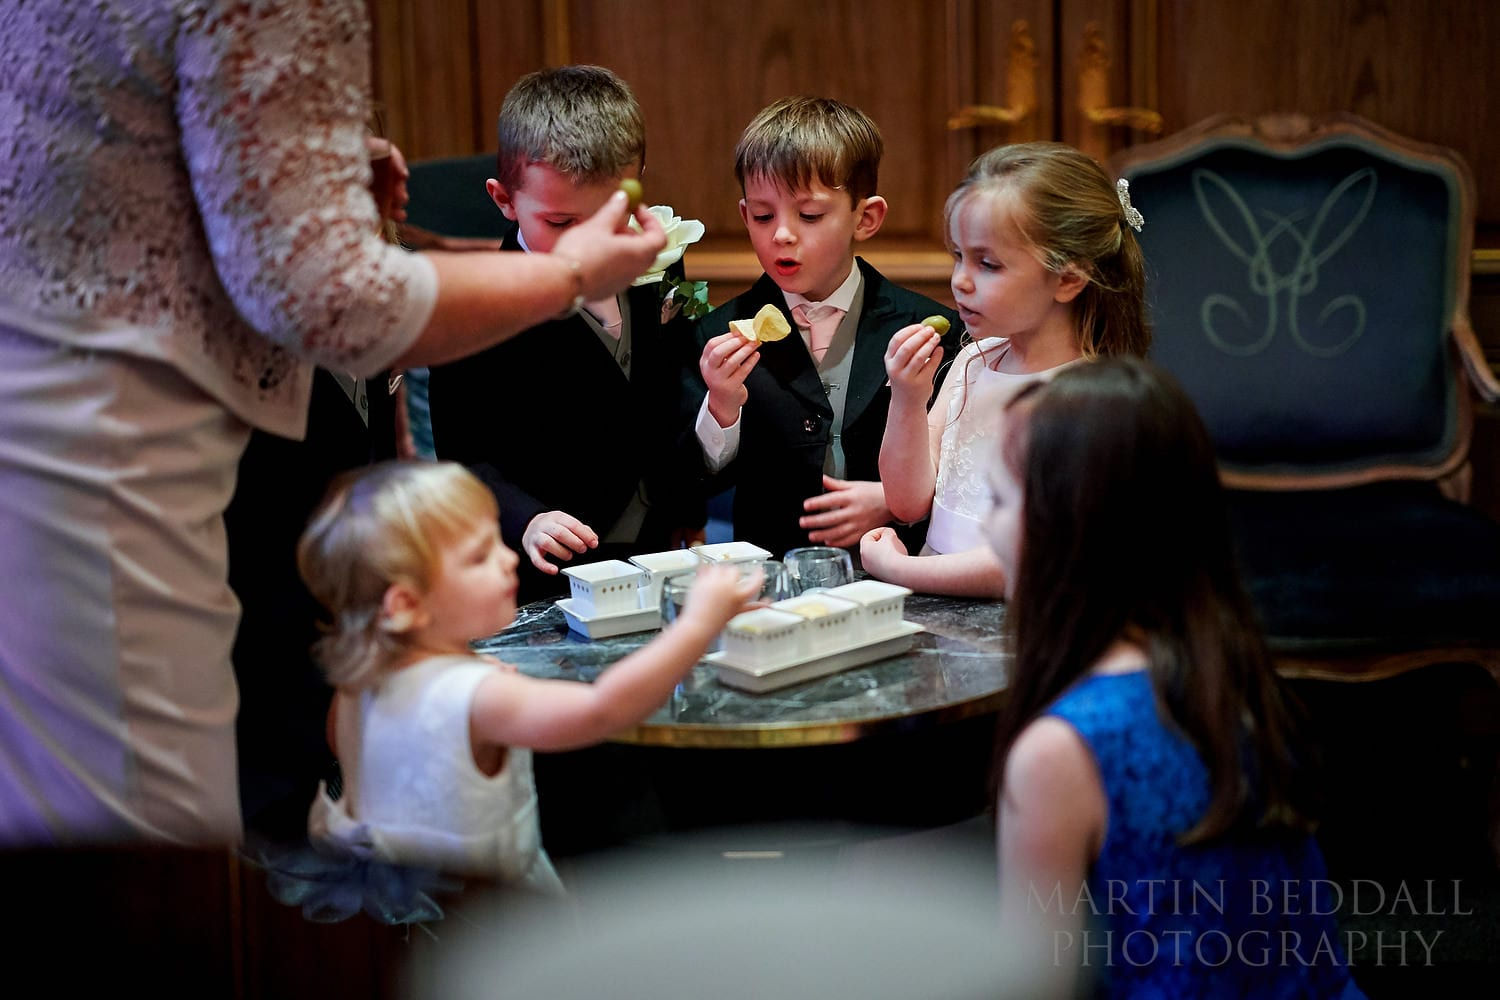 Crisps for the children at Claridges wedding